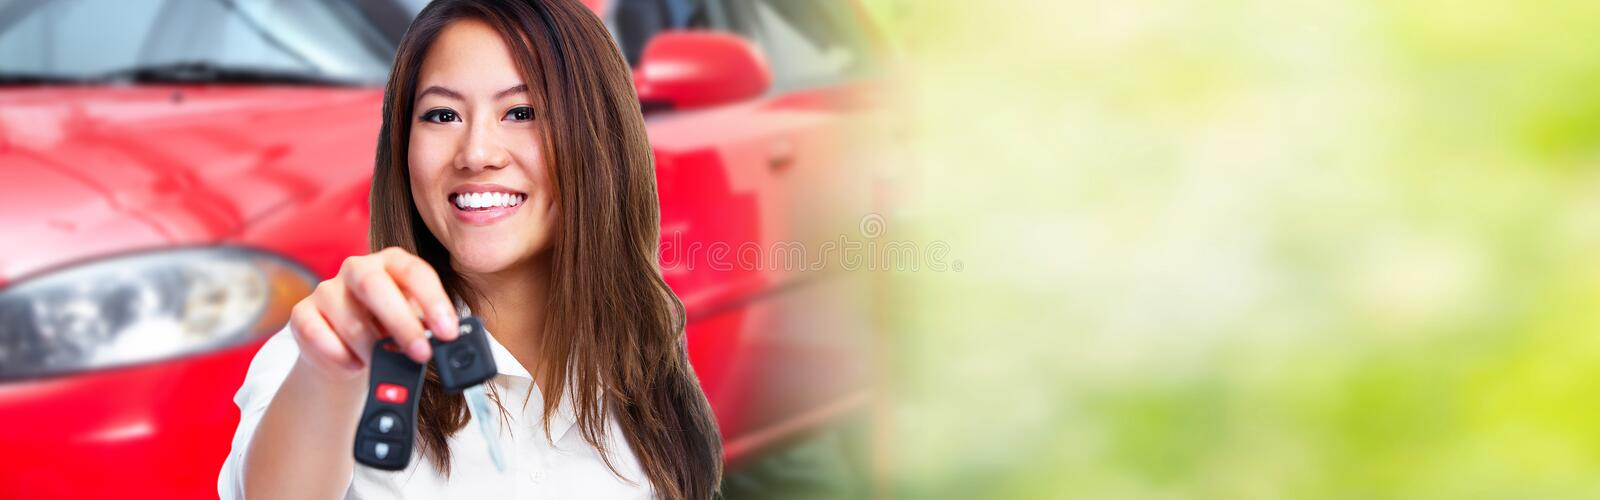 Woman with a car key. Auto dealership and rental concept background stock image